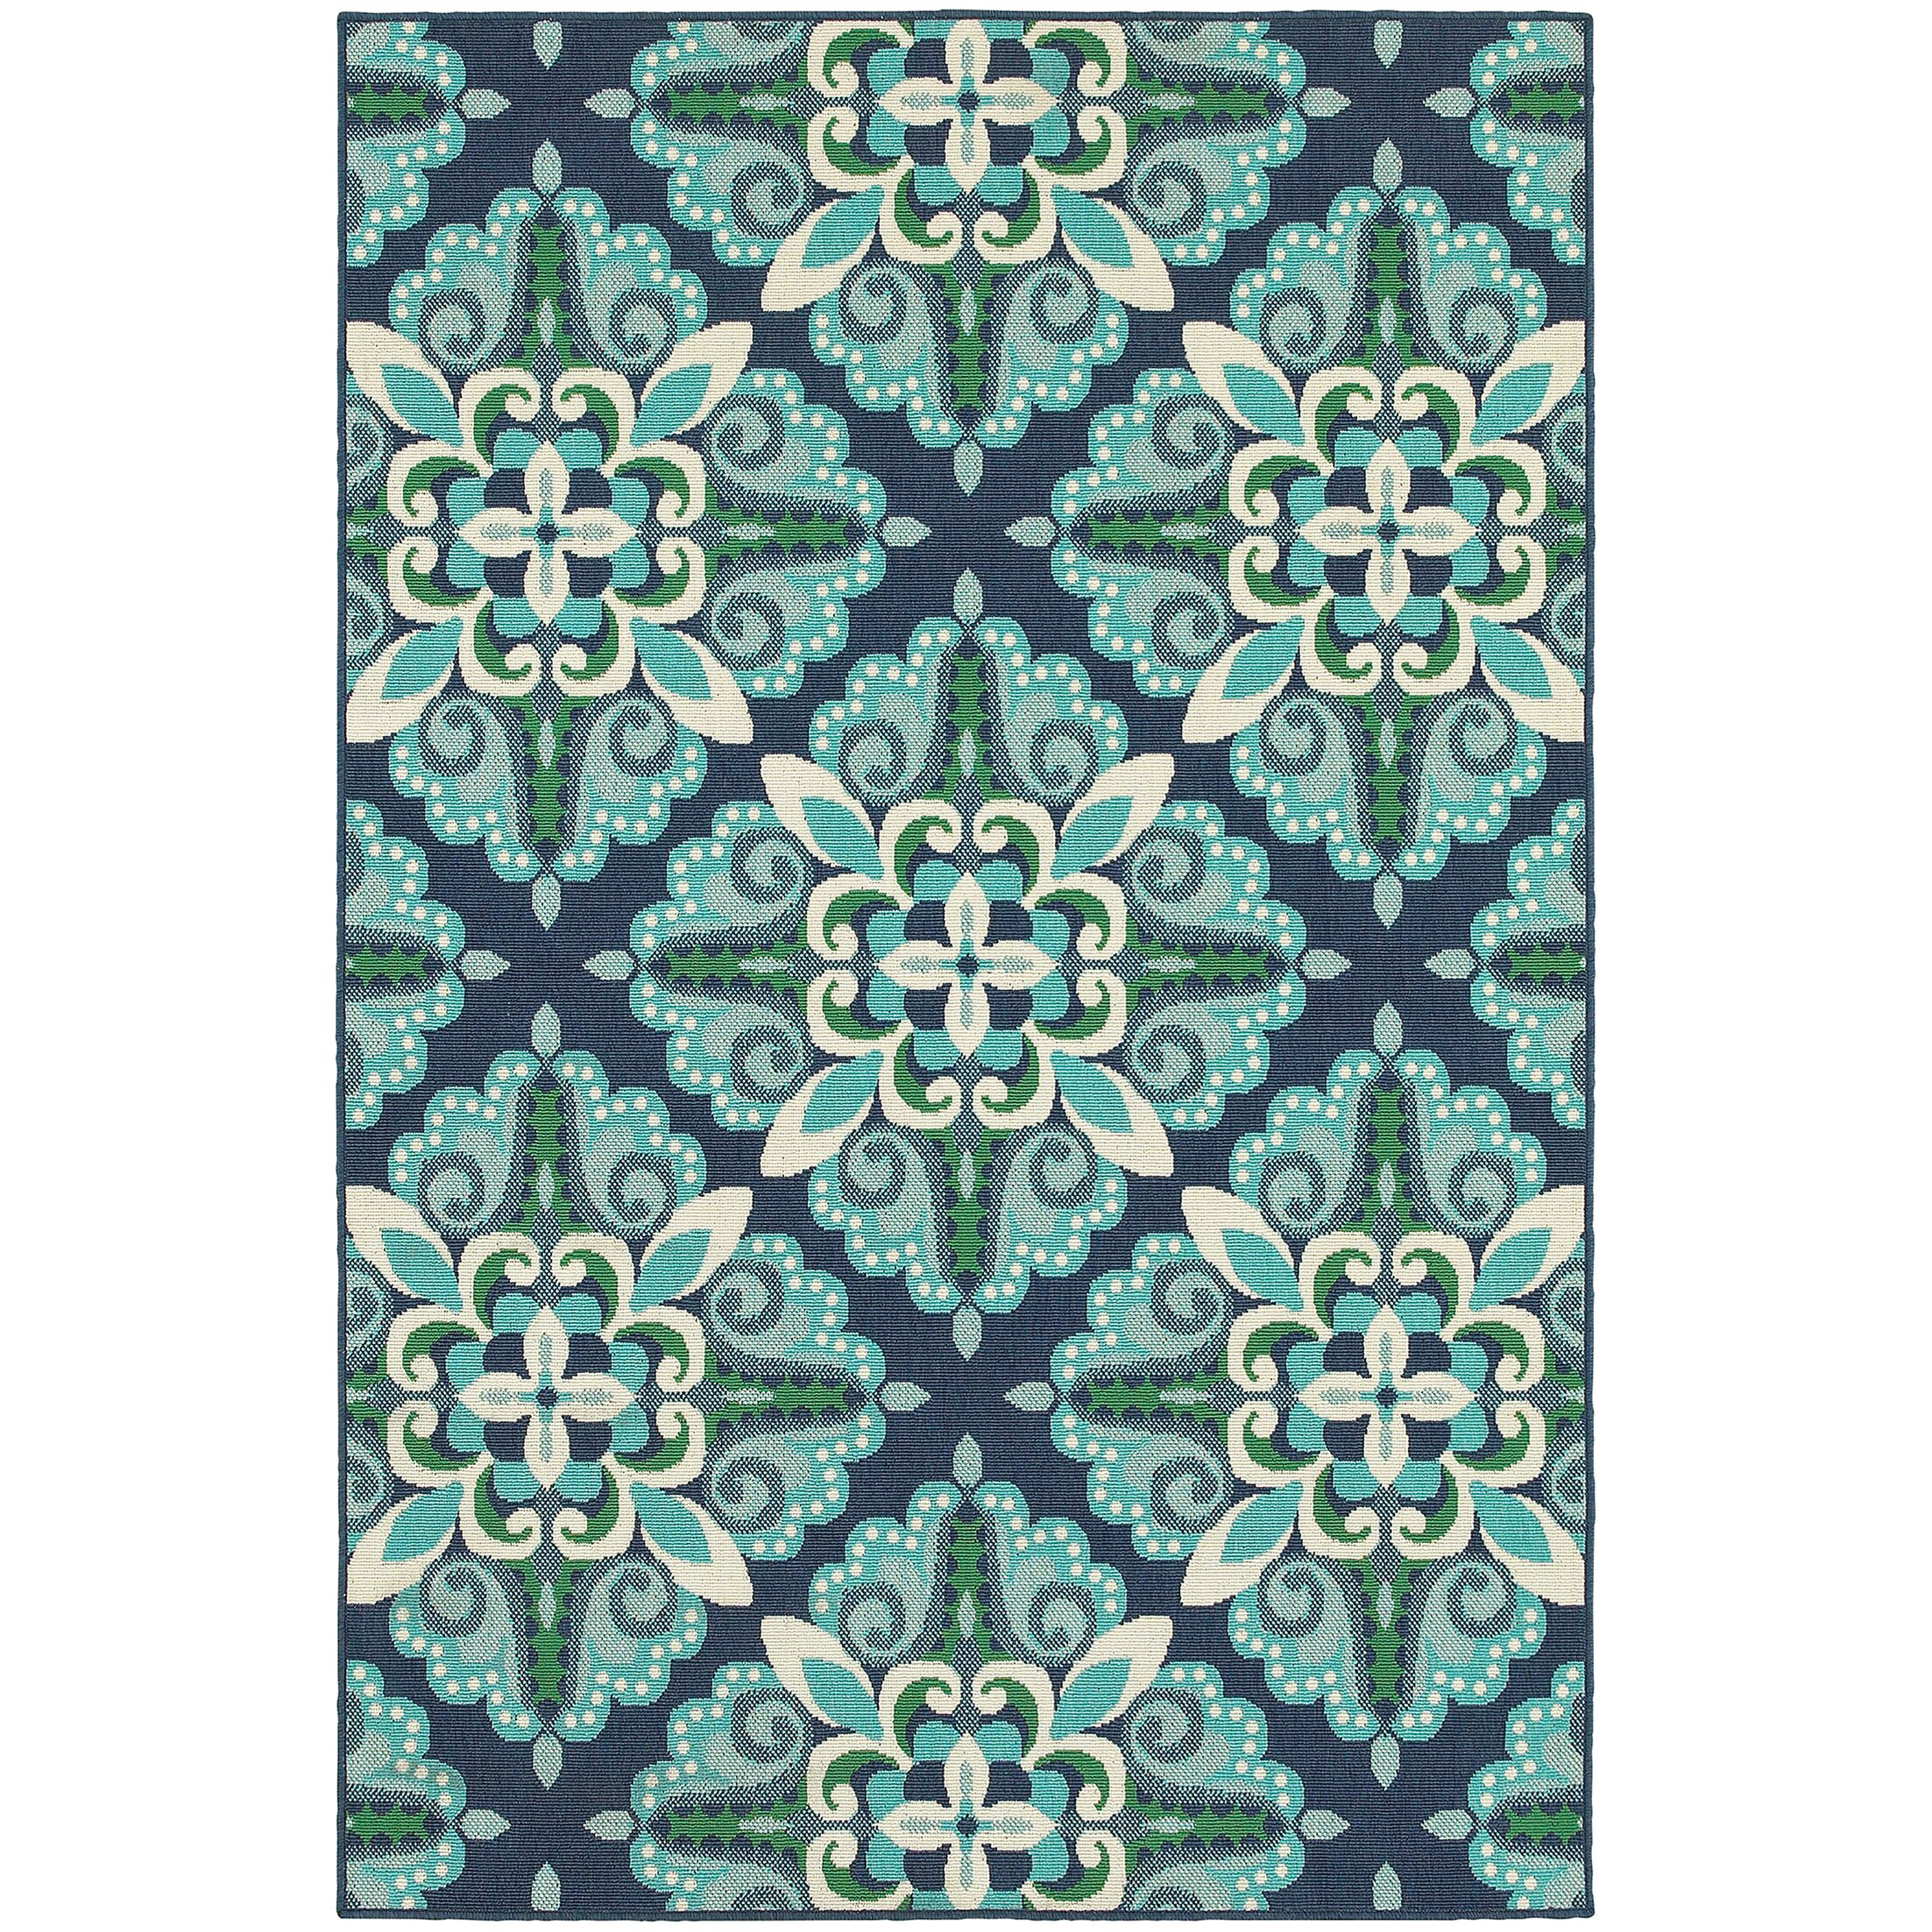 Kailani Contemporary Blue/Green Indoor/Outdoor Area Rug Rug Size: Rectangle 5'3